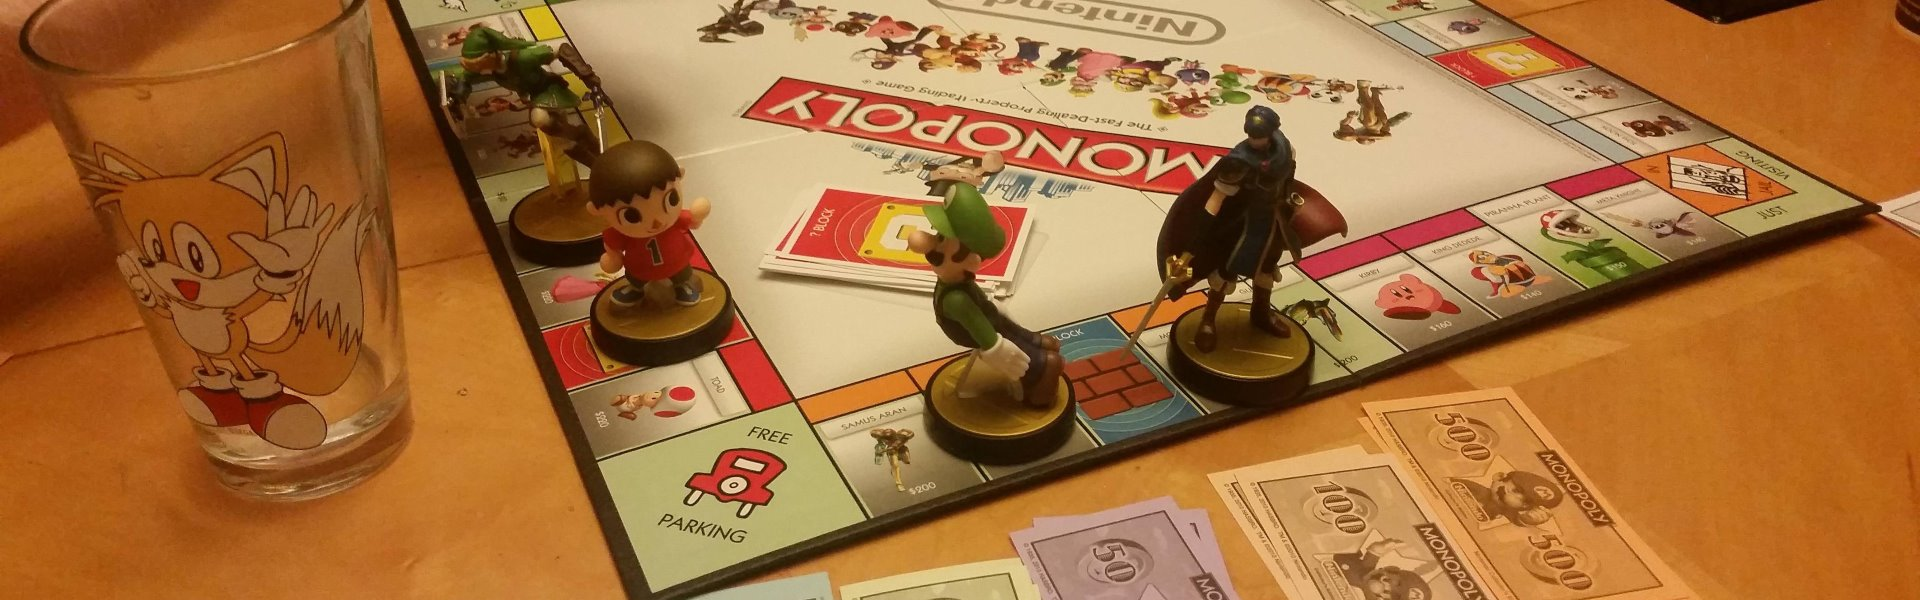 Best Monopoly Editions Reviewed in Detail